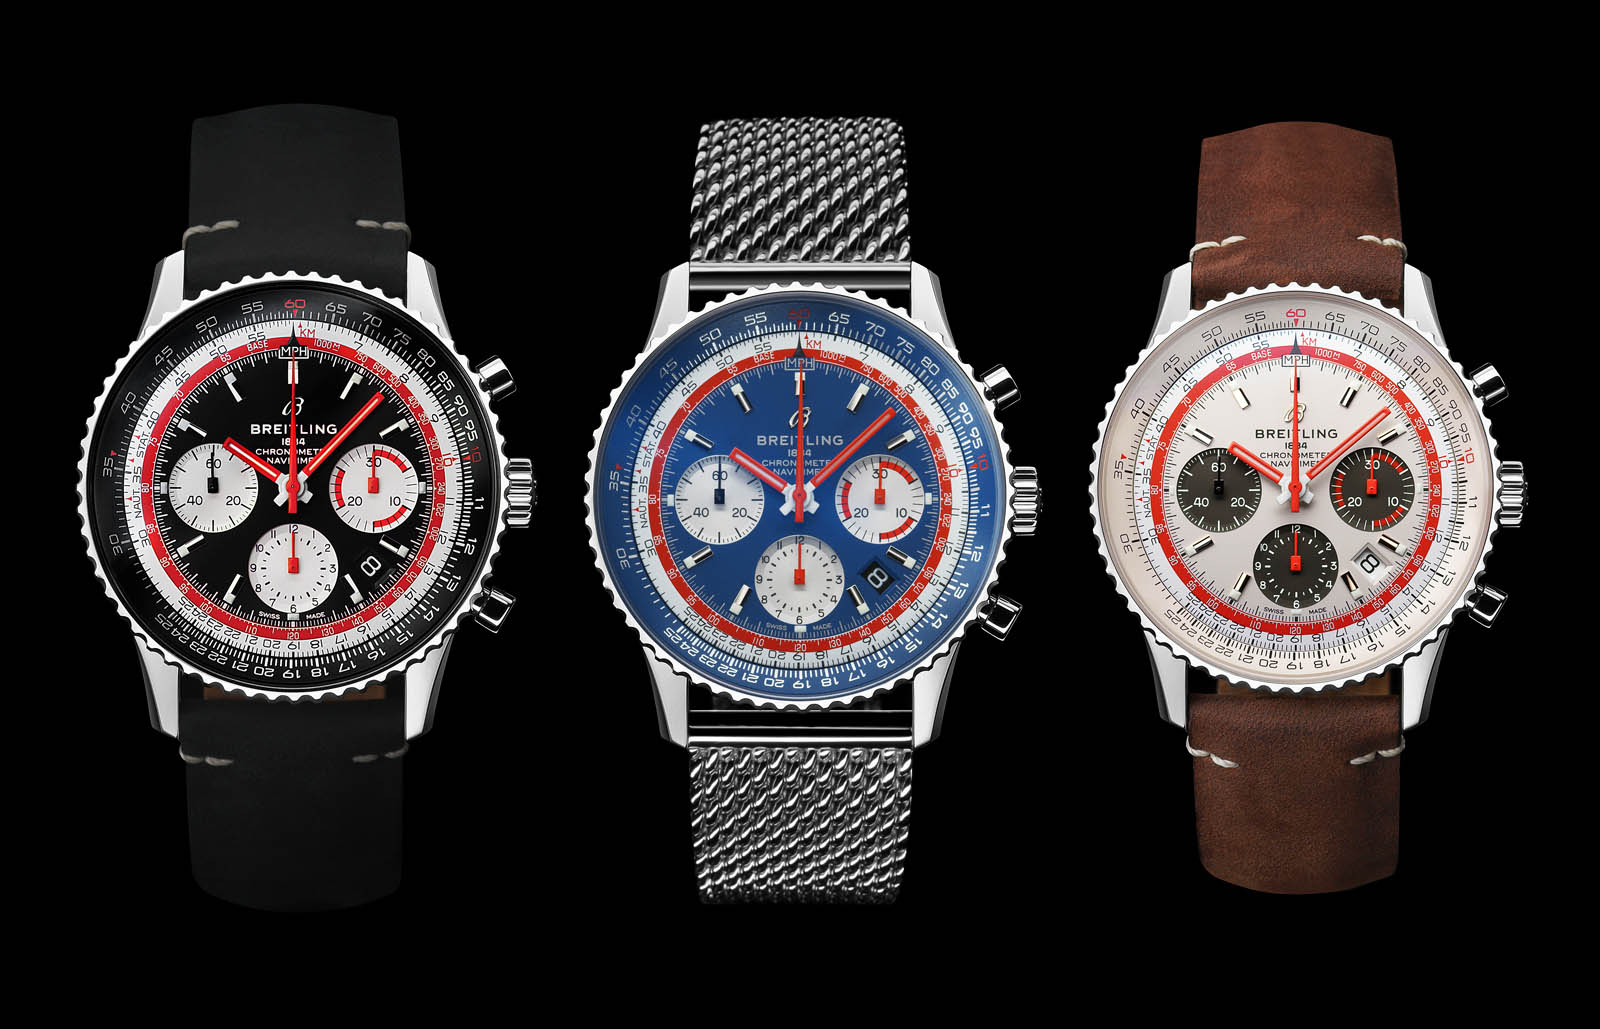 prix compétitif 69f15 09f04 Breitling Introduces the Navitimer 1 Airline Editions | SJX ...